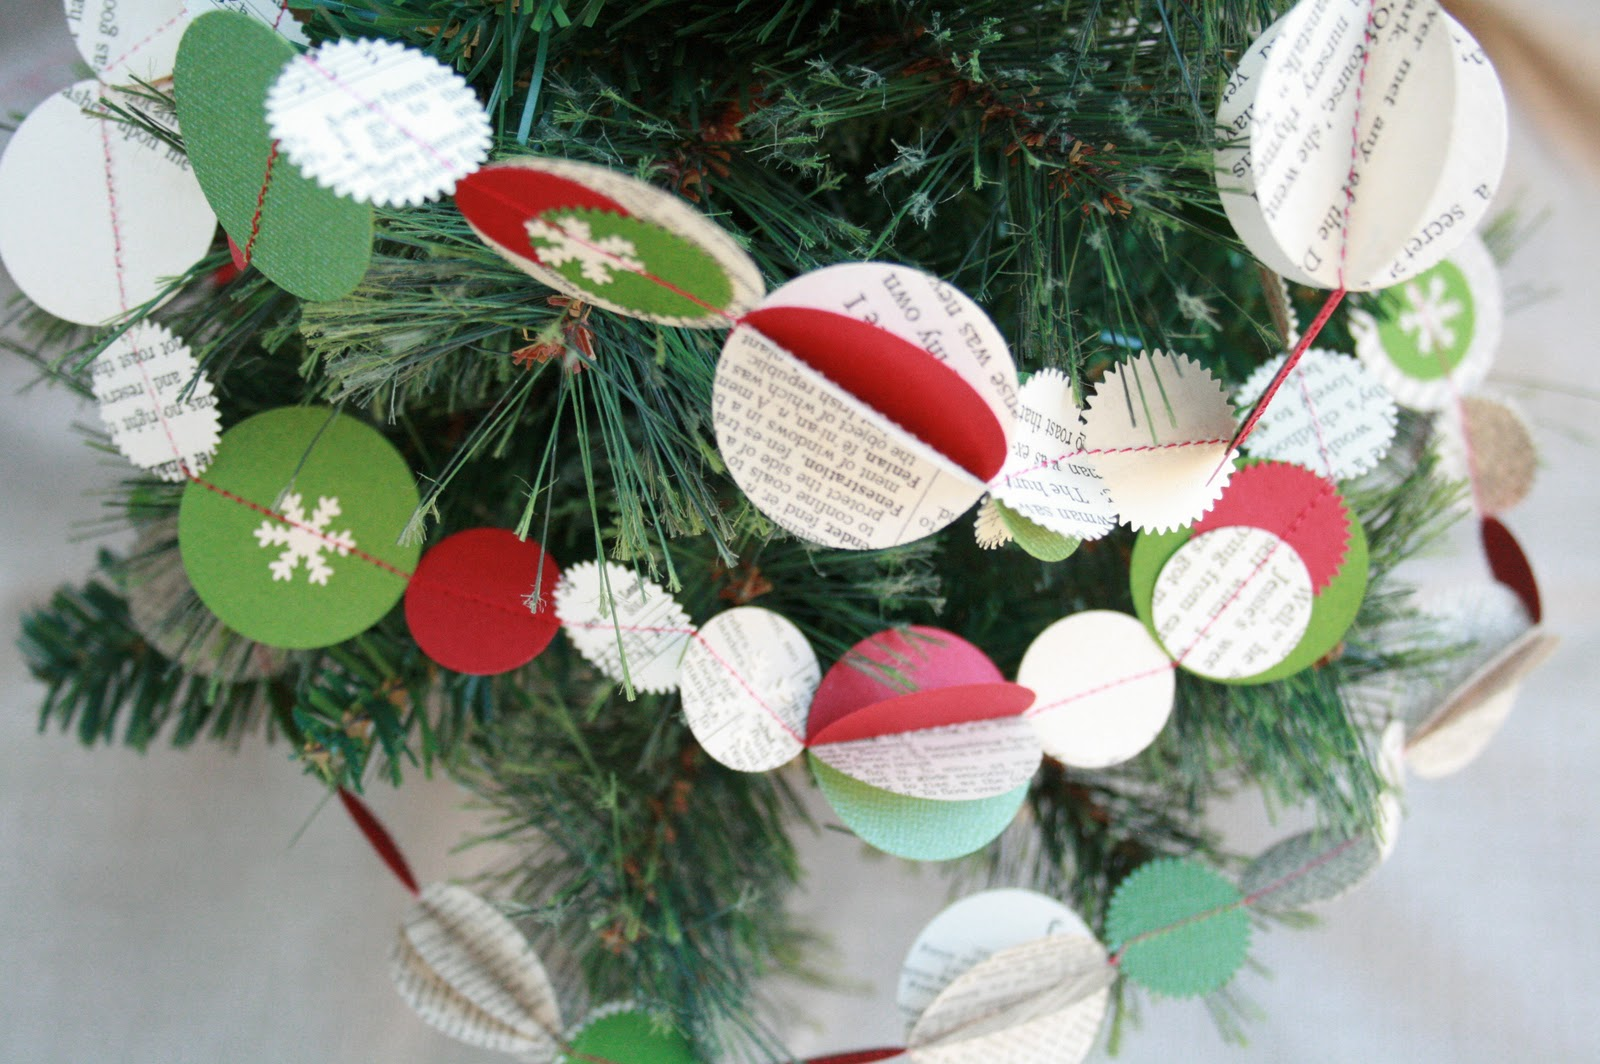 The creative place diy festive holiday garland